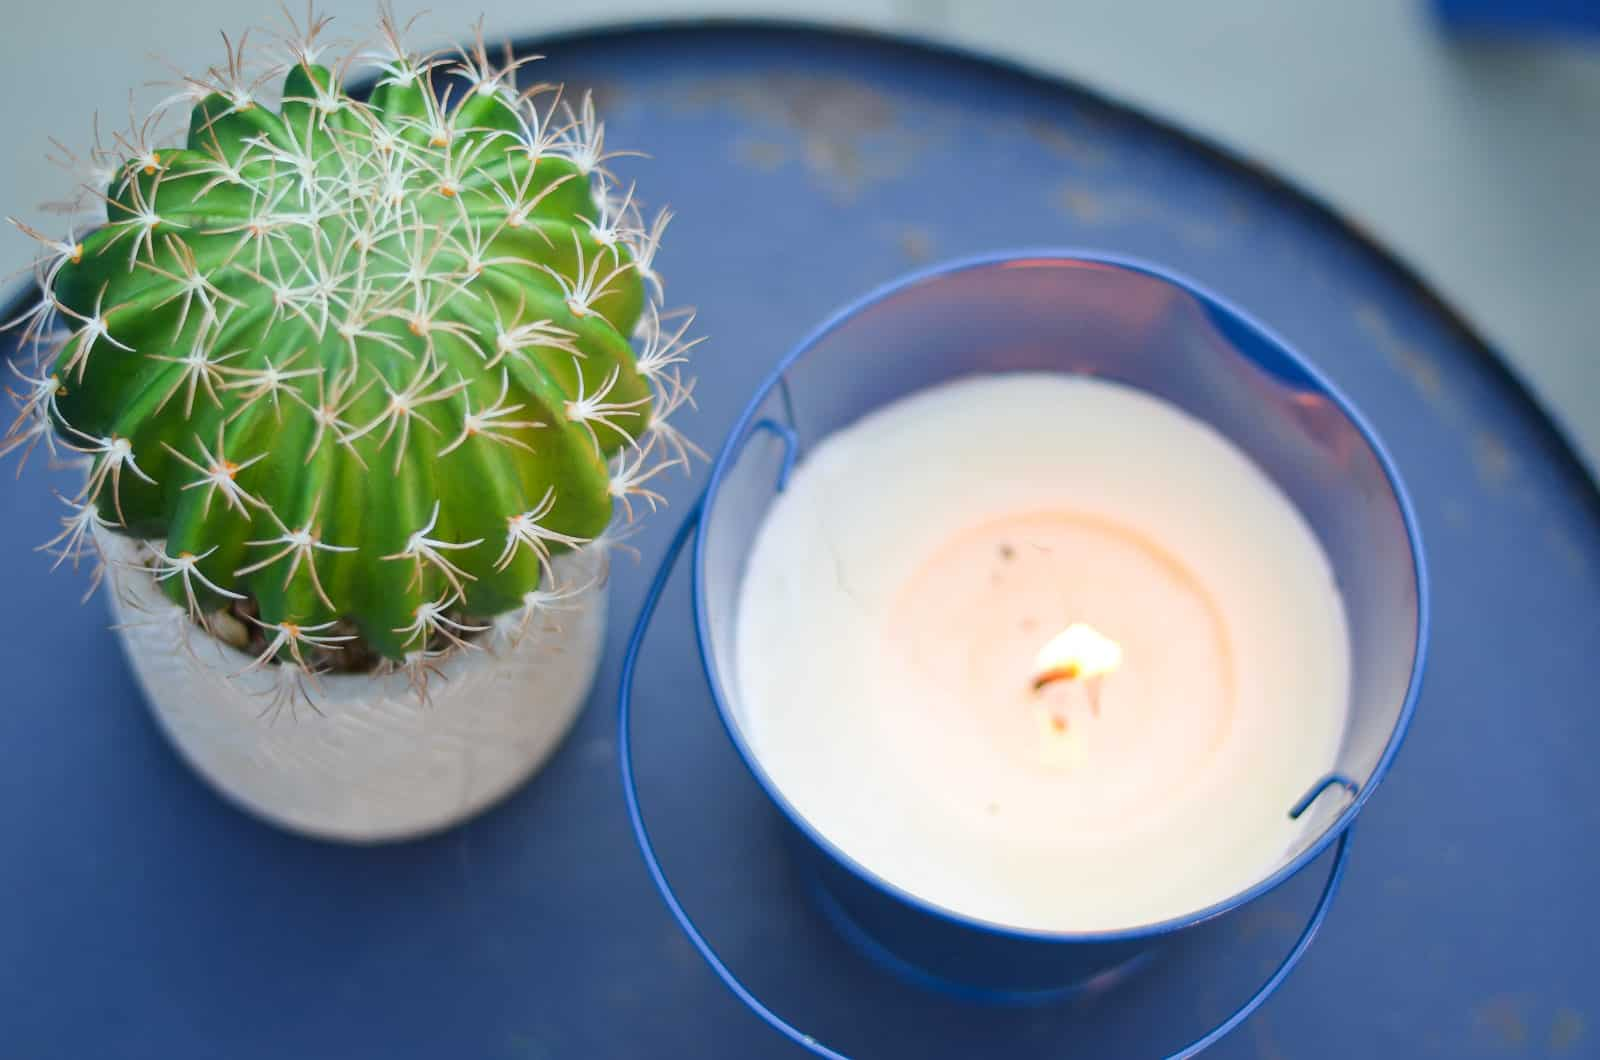 citronella candle with cactus